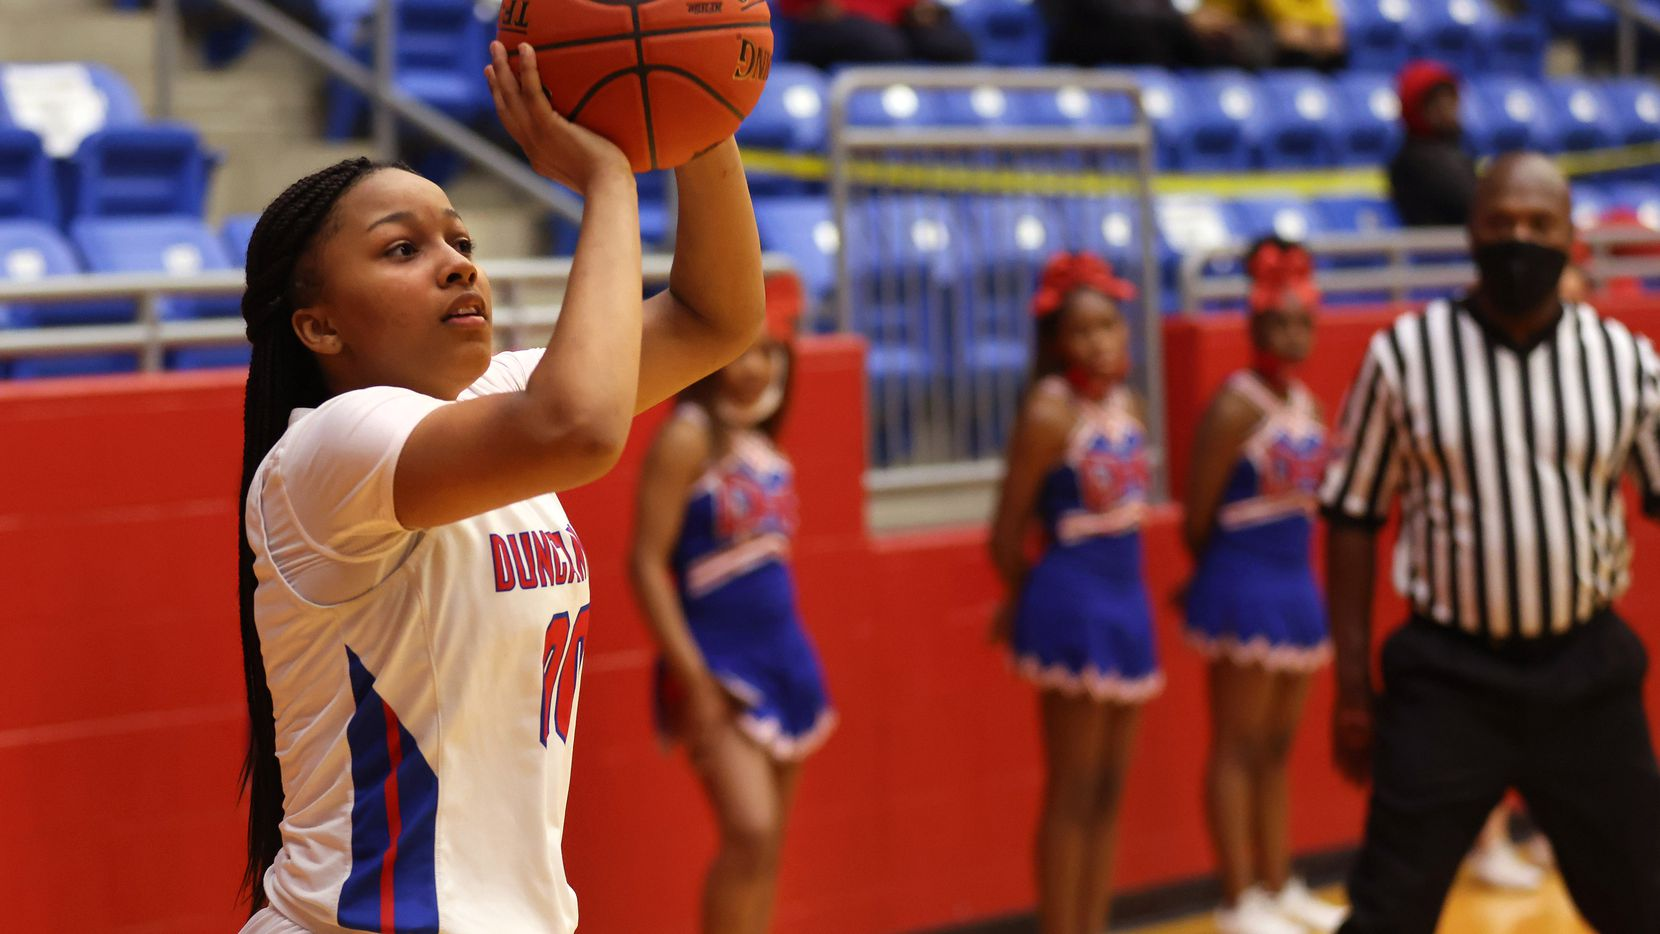 Duncanville's Hope LeMelle (00) attempts a shot in a game against Cedar Hill during the second half of play at Sandra Meadows Arena at Duncanville High School on Tuesday, Jan. 12, 2021, in Dallas. Duncanville defeated Cedar Hill 63-42.